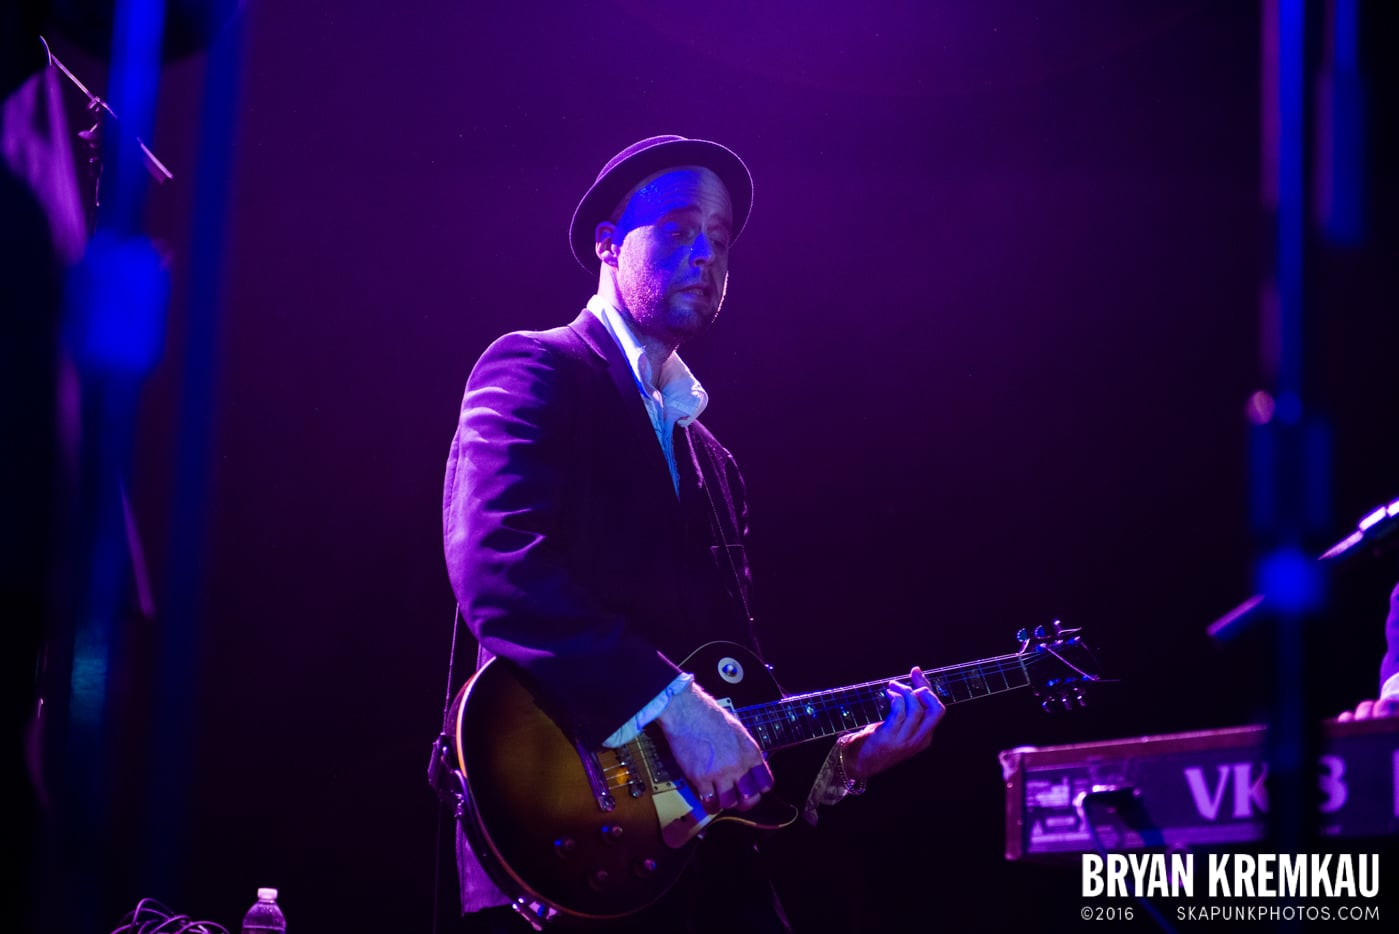 The Slackers @ Apple Stomp: Day 2, Irving Plaza, NYC - June 1st 2013 - Bryan Kremkau (7)